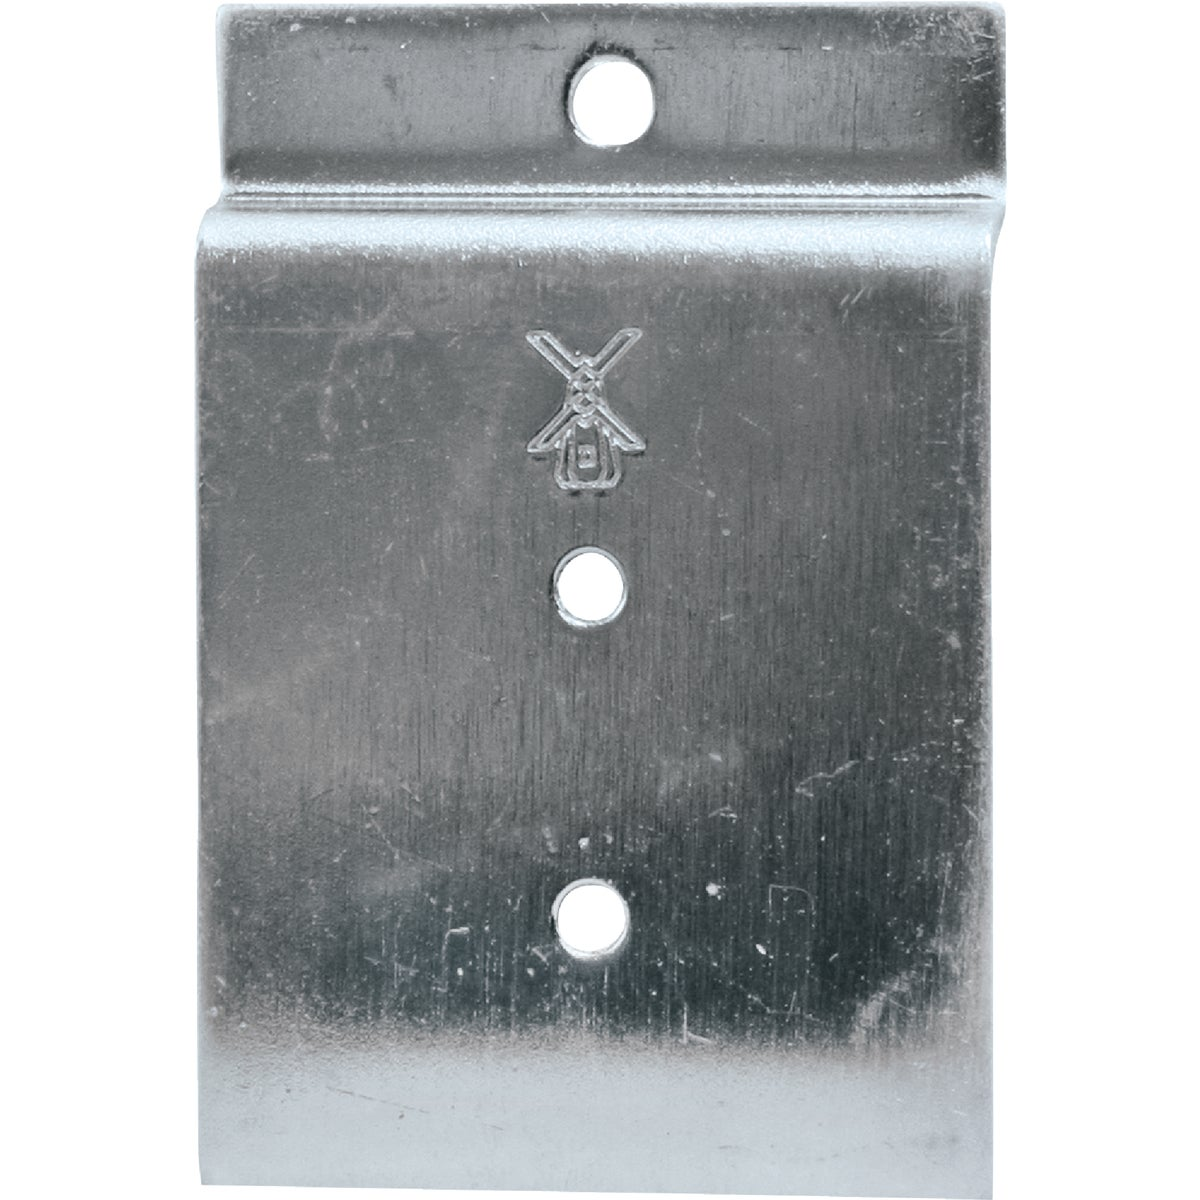 2PK CABINET HANGER BRCKT - ABBP-K by Garage Escape